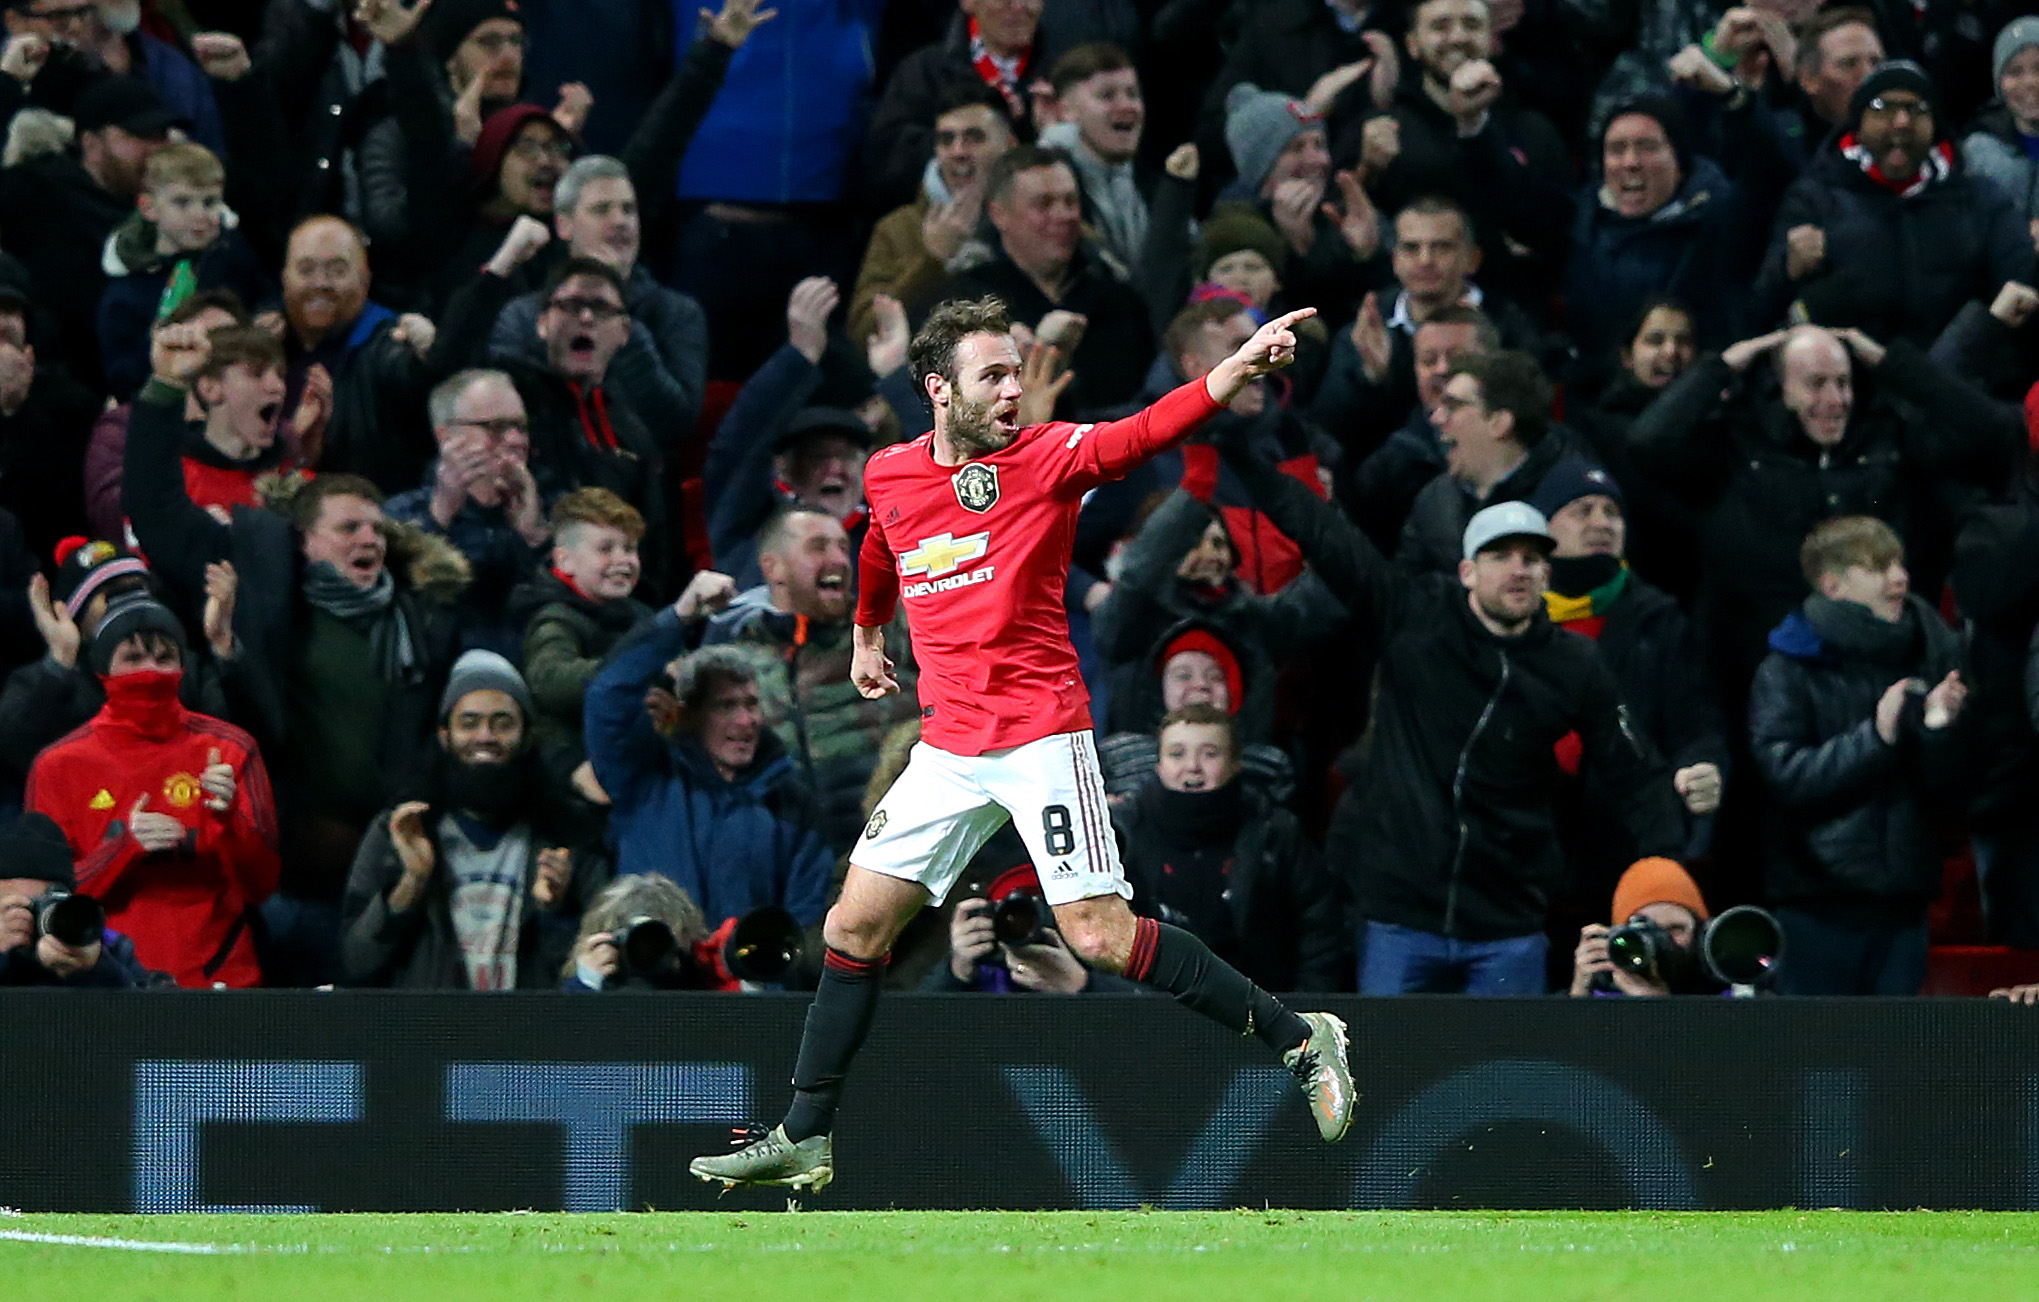 Mata the match winner (Photo by Alex Livesey/Getty Images)